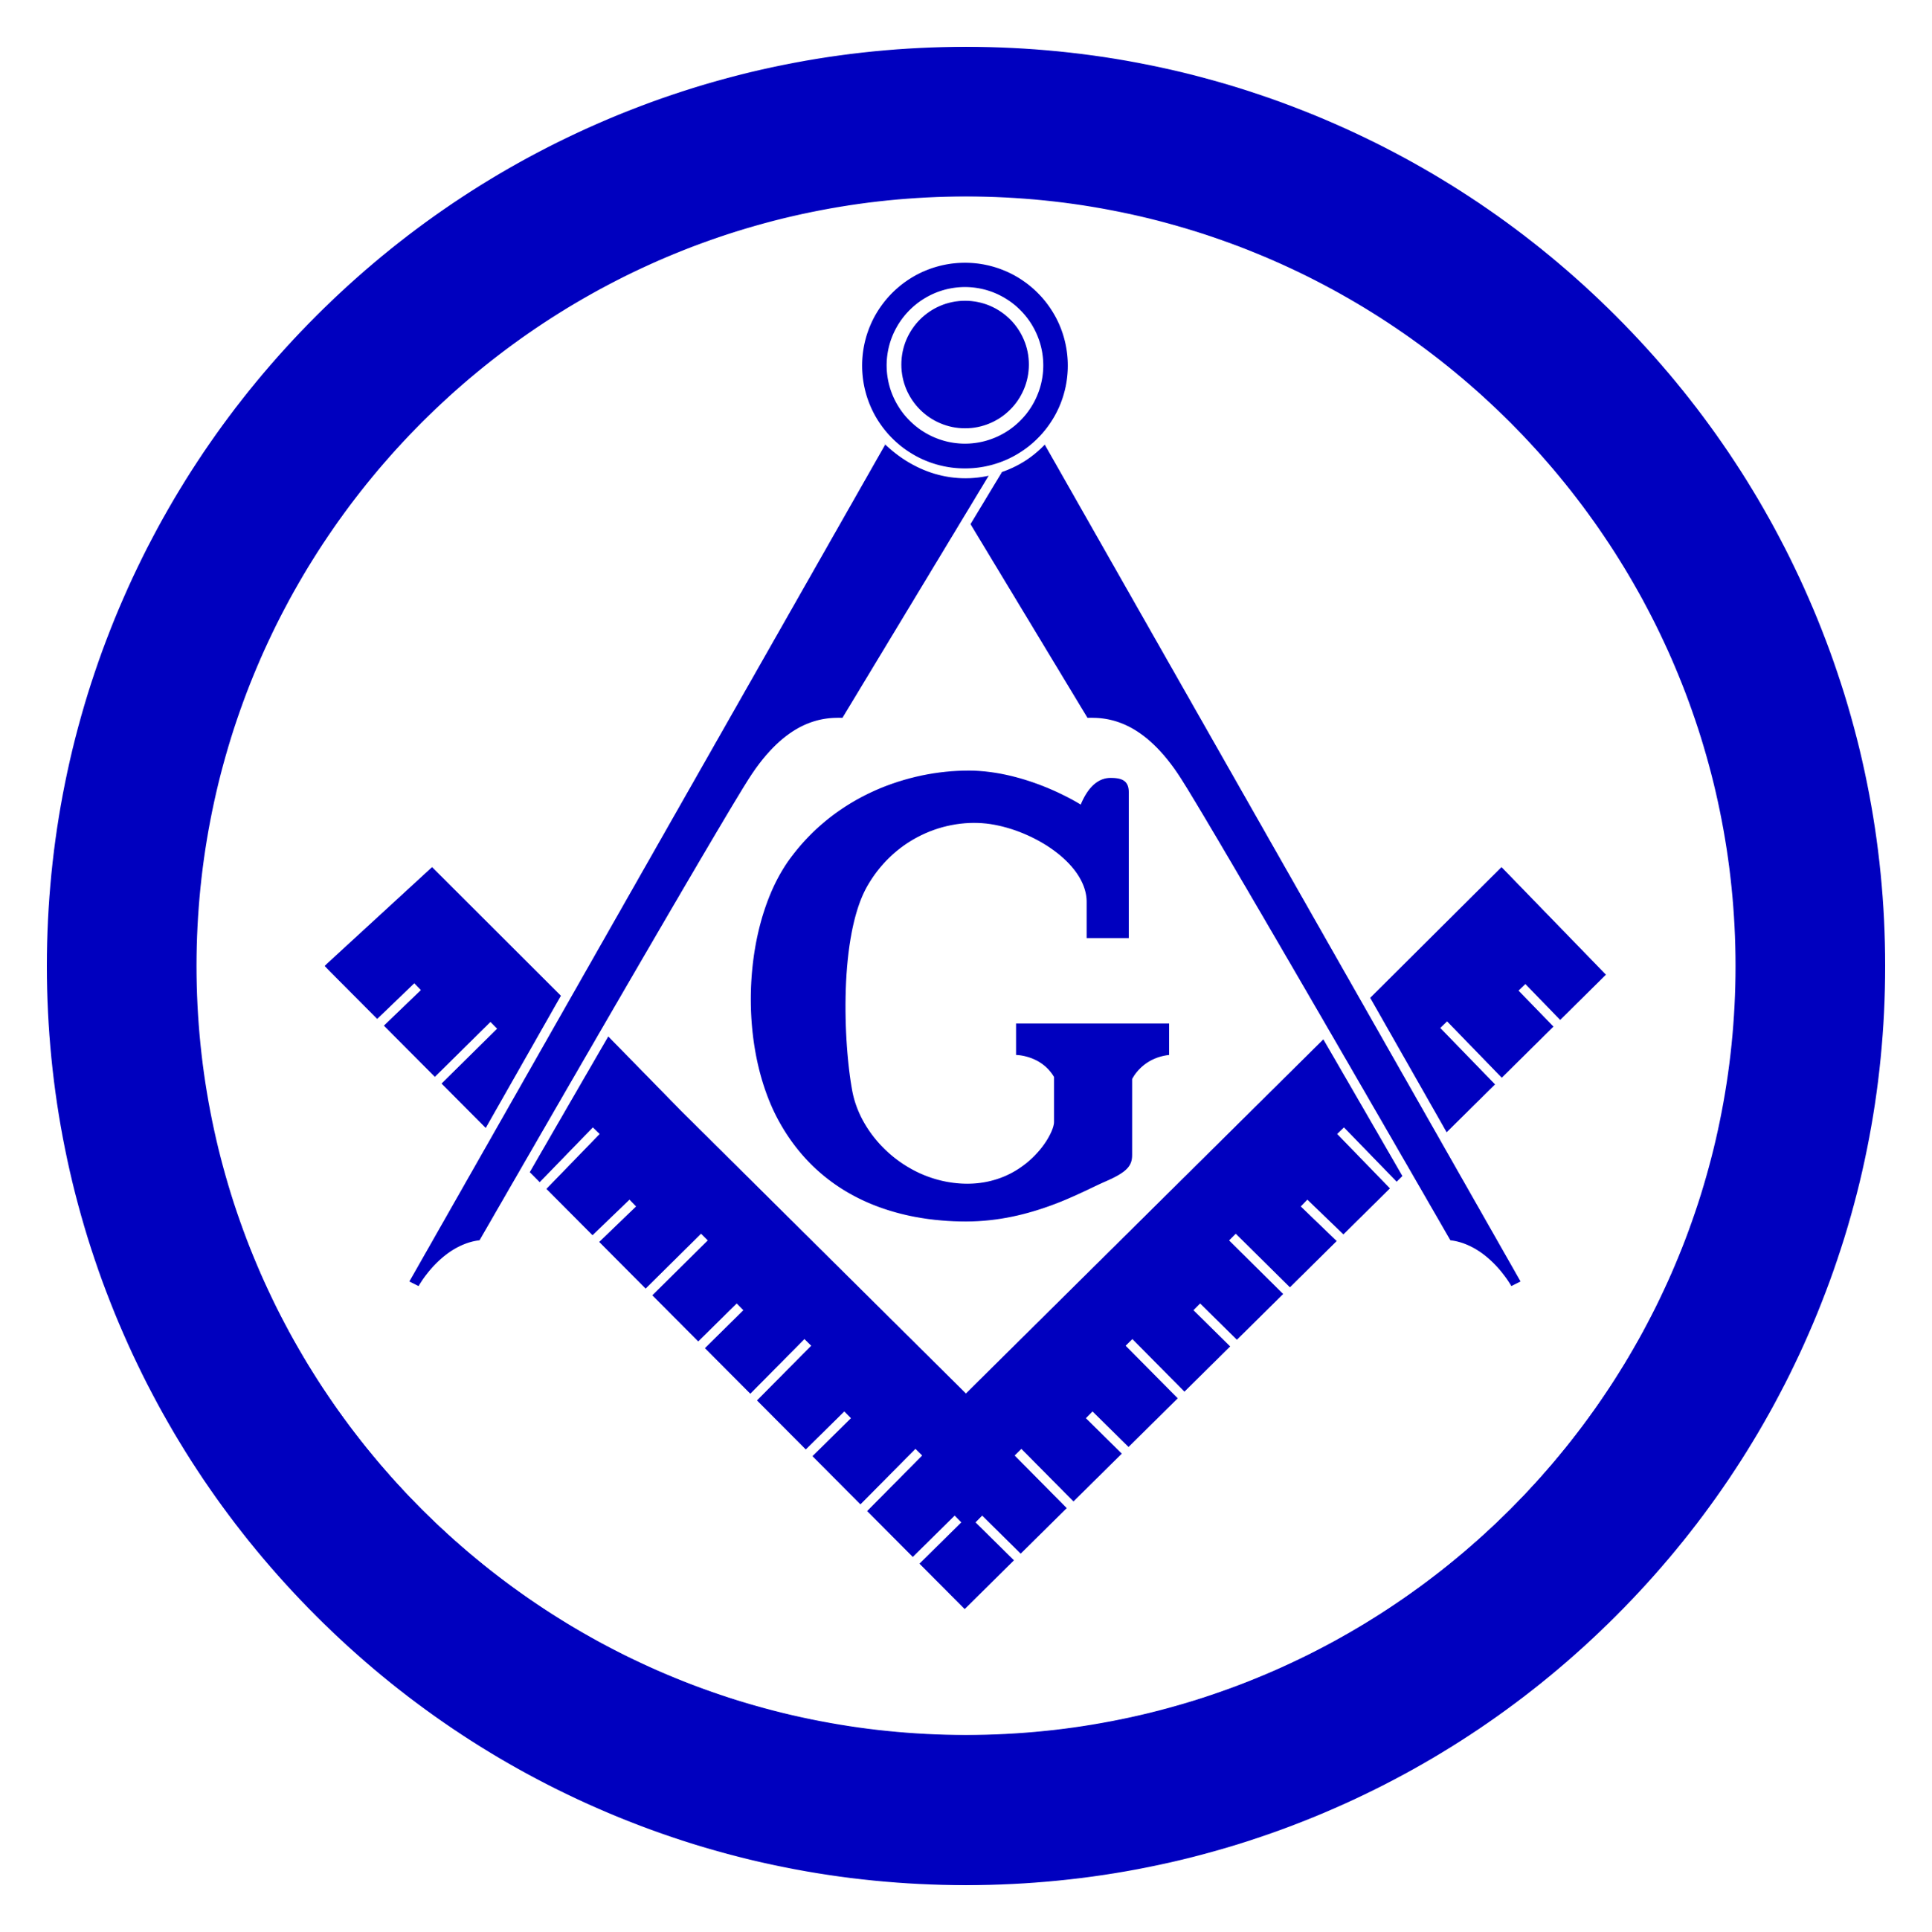 Square and compass png. Free masonic logos emblems